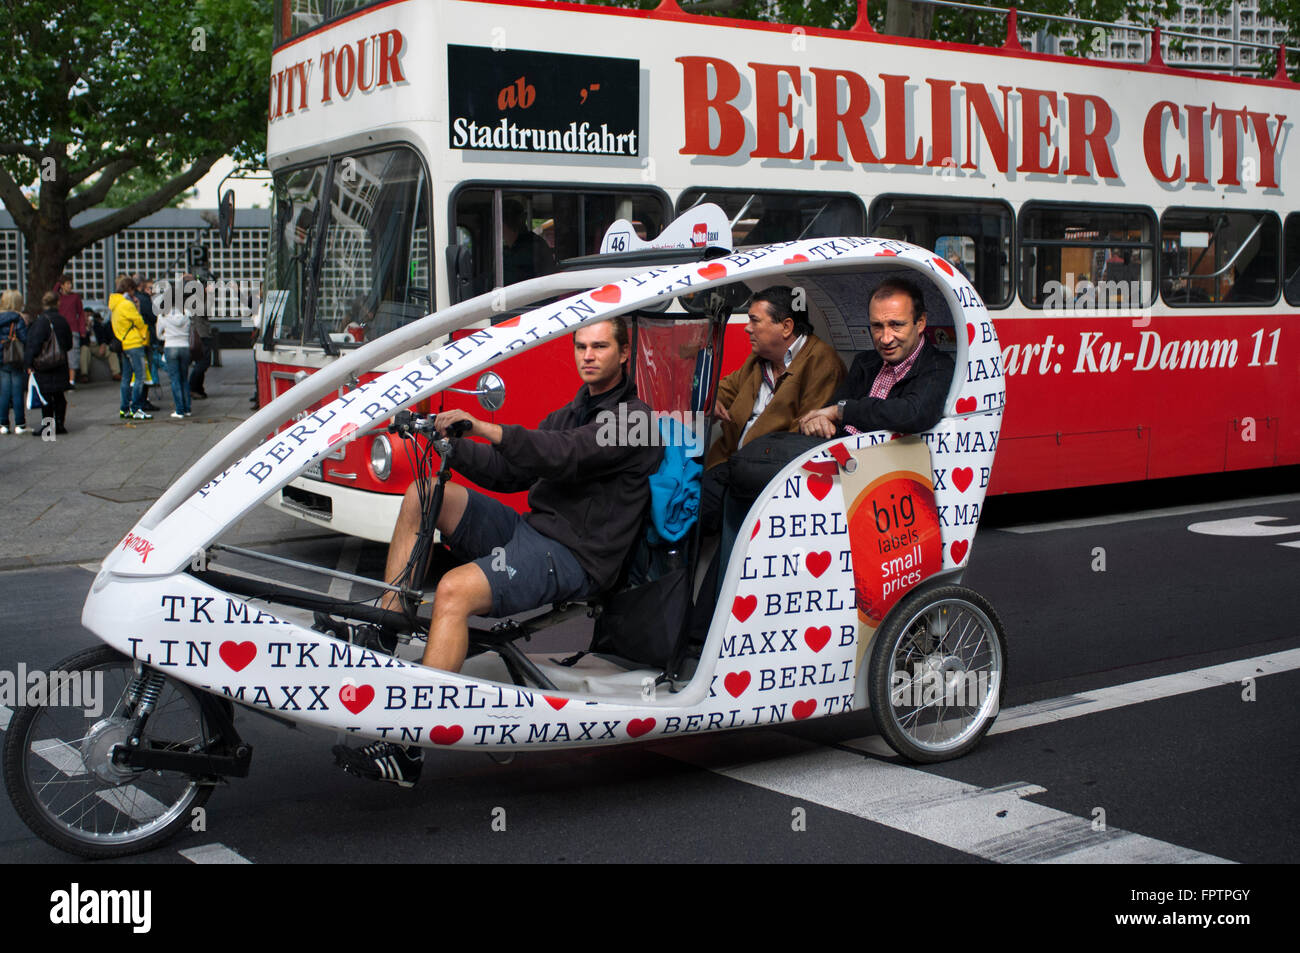 Turistic bus and Tourist Bicycle in Berlin, Germany. Berliner City Bus. If you decided to visit Berlin, a bike tour - Stock Image